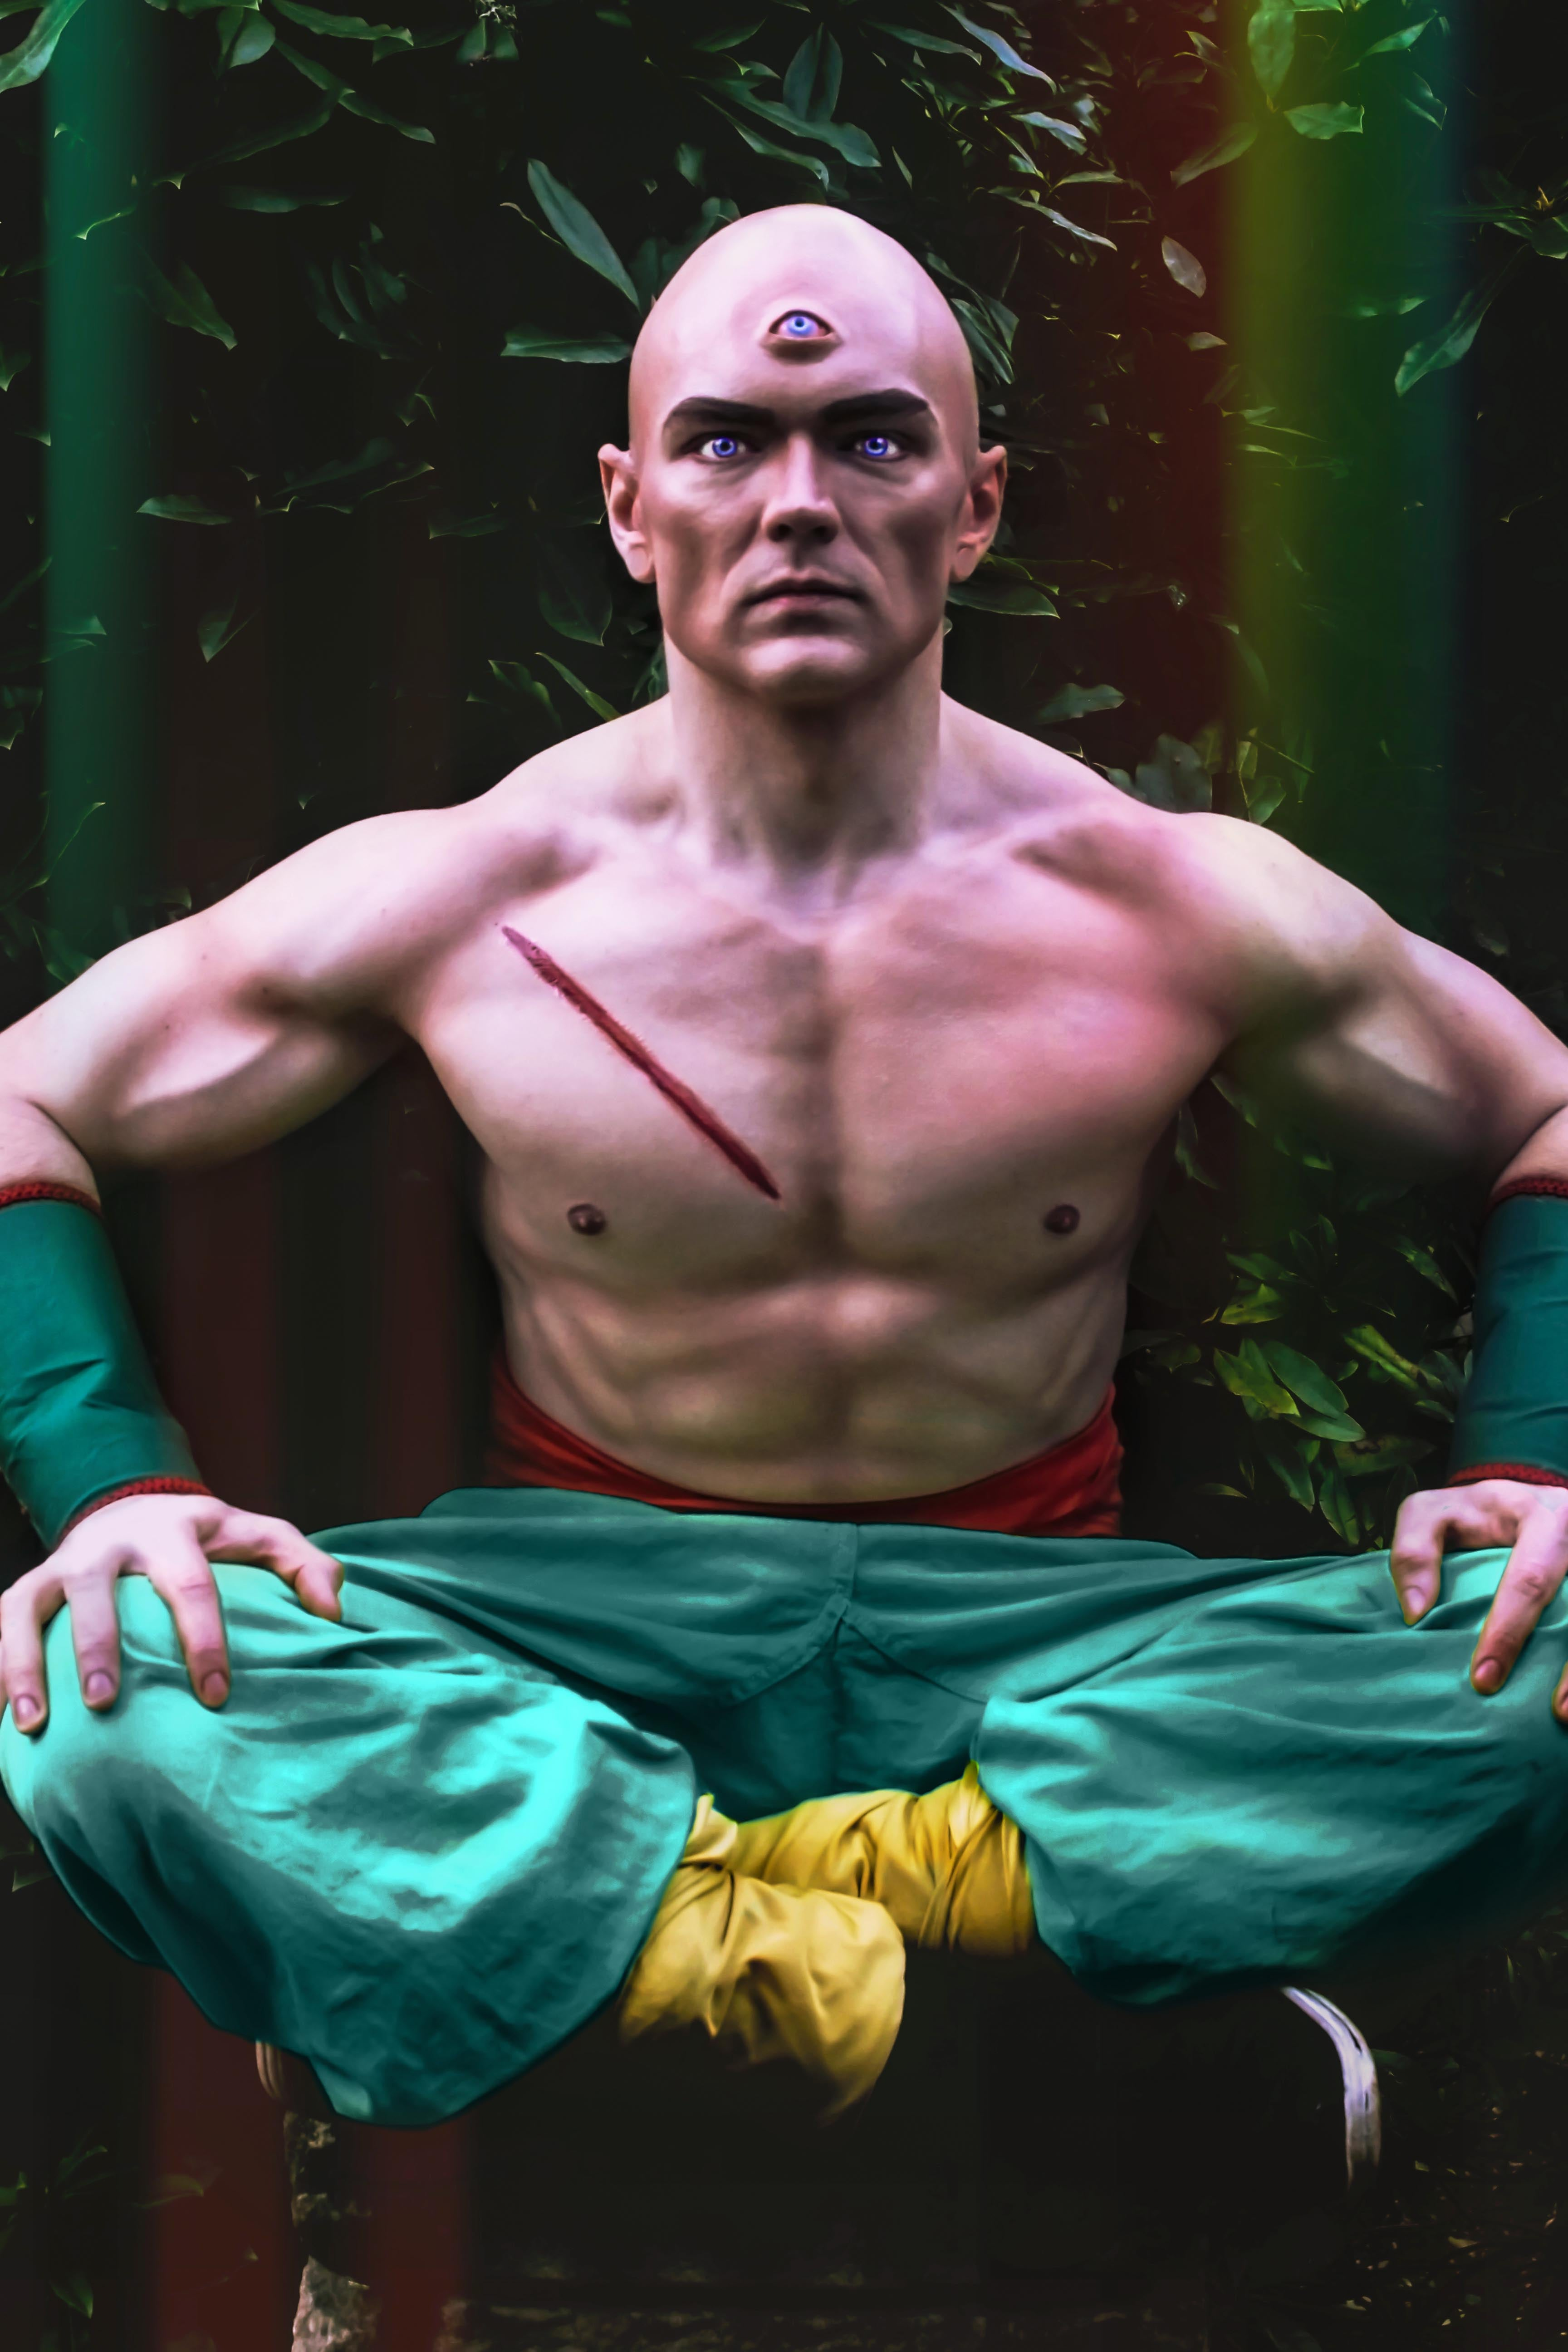 Tien cosplay from Dragon Ball Z with prosthetic eye